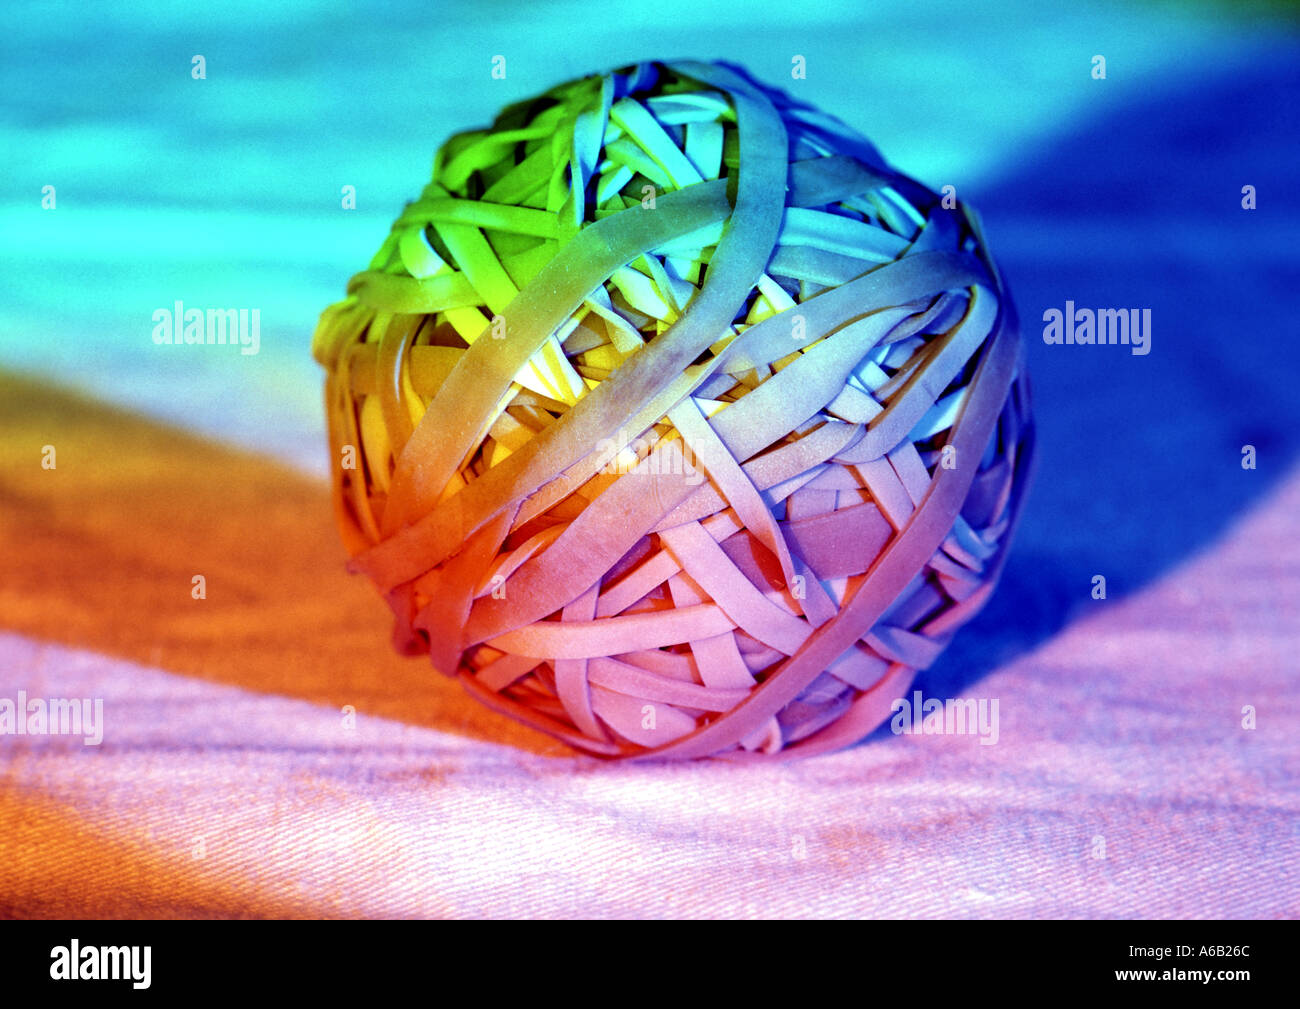 Colourful photo of ball of elastic bands as concept type image eg banding together office relationships stretch the imagination etc - Stock Image